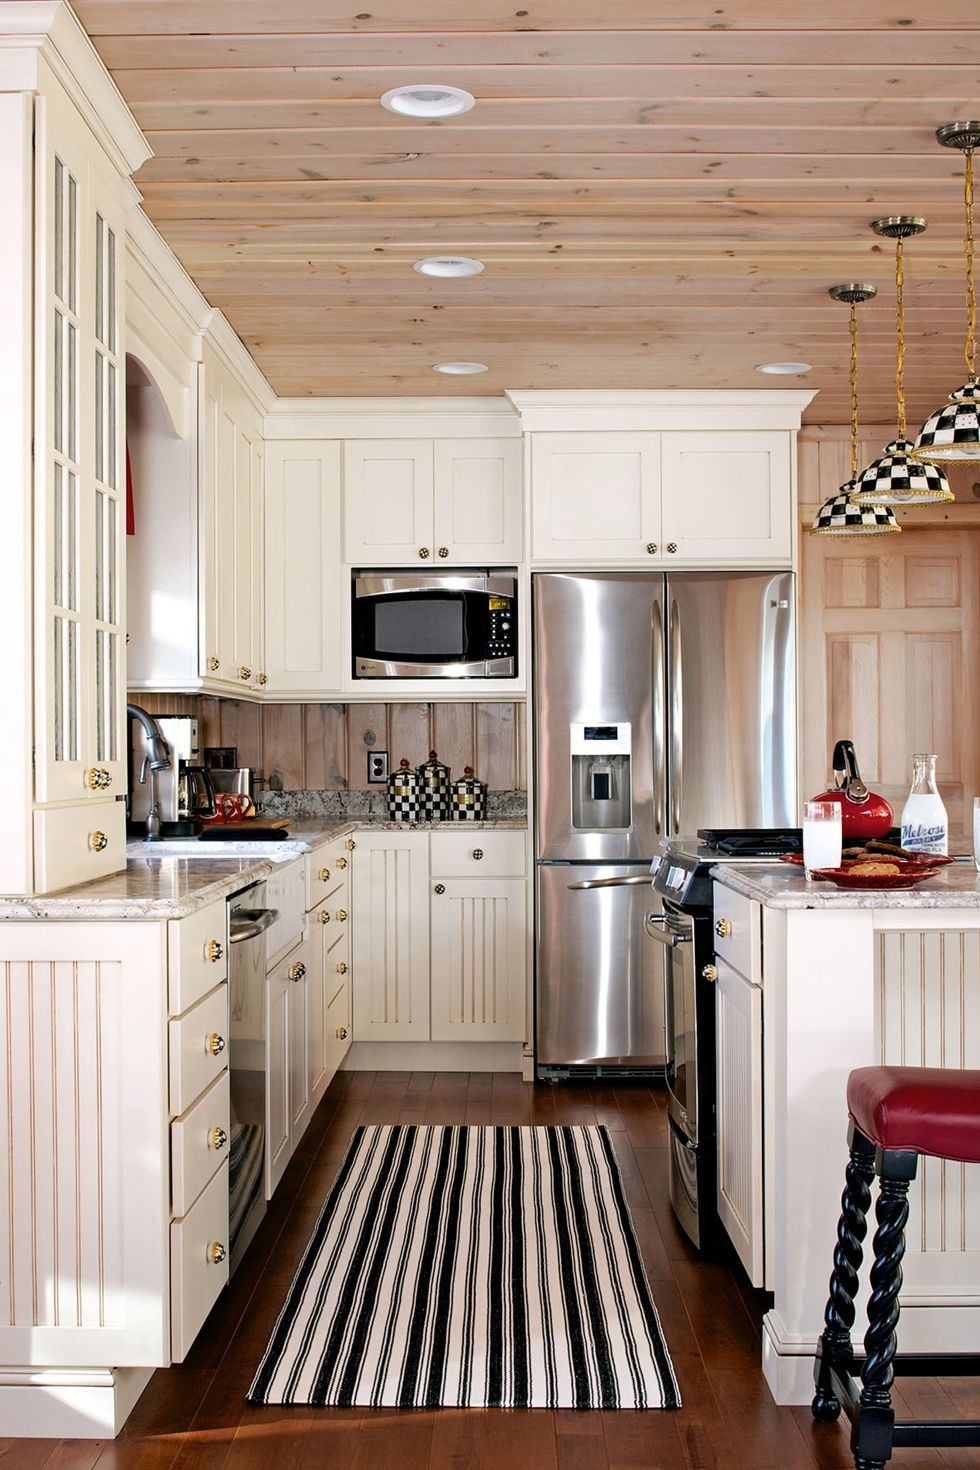 Cute & Cozy Kitchen Perfect Design For The Lake House.